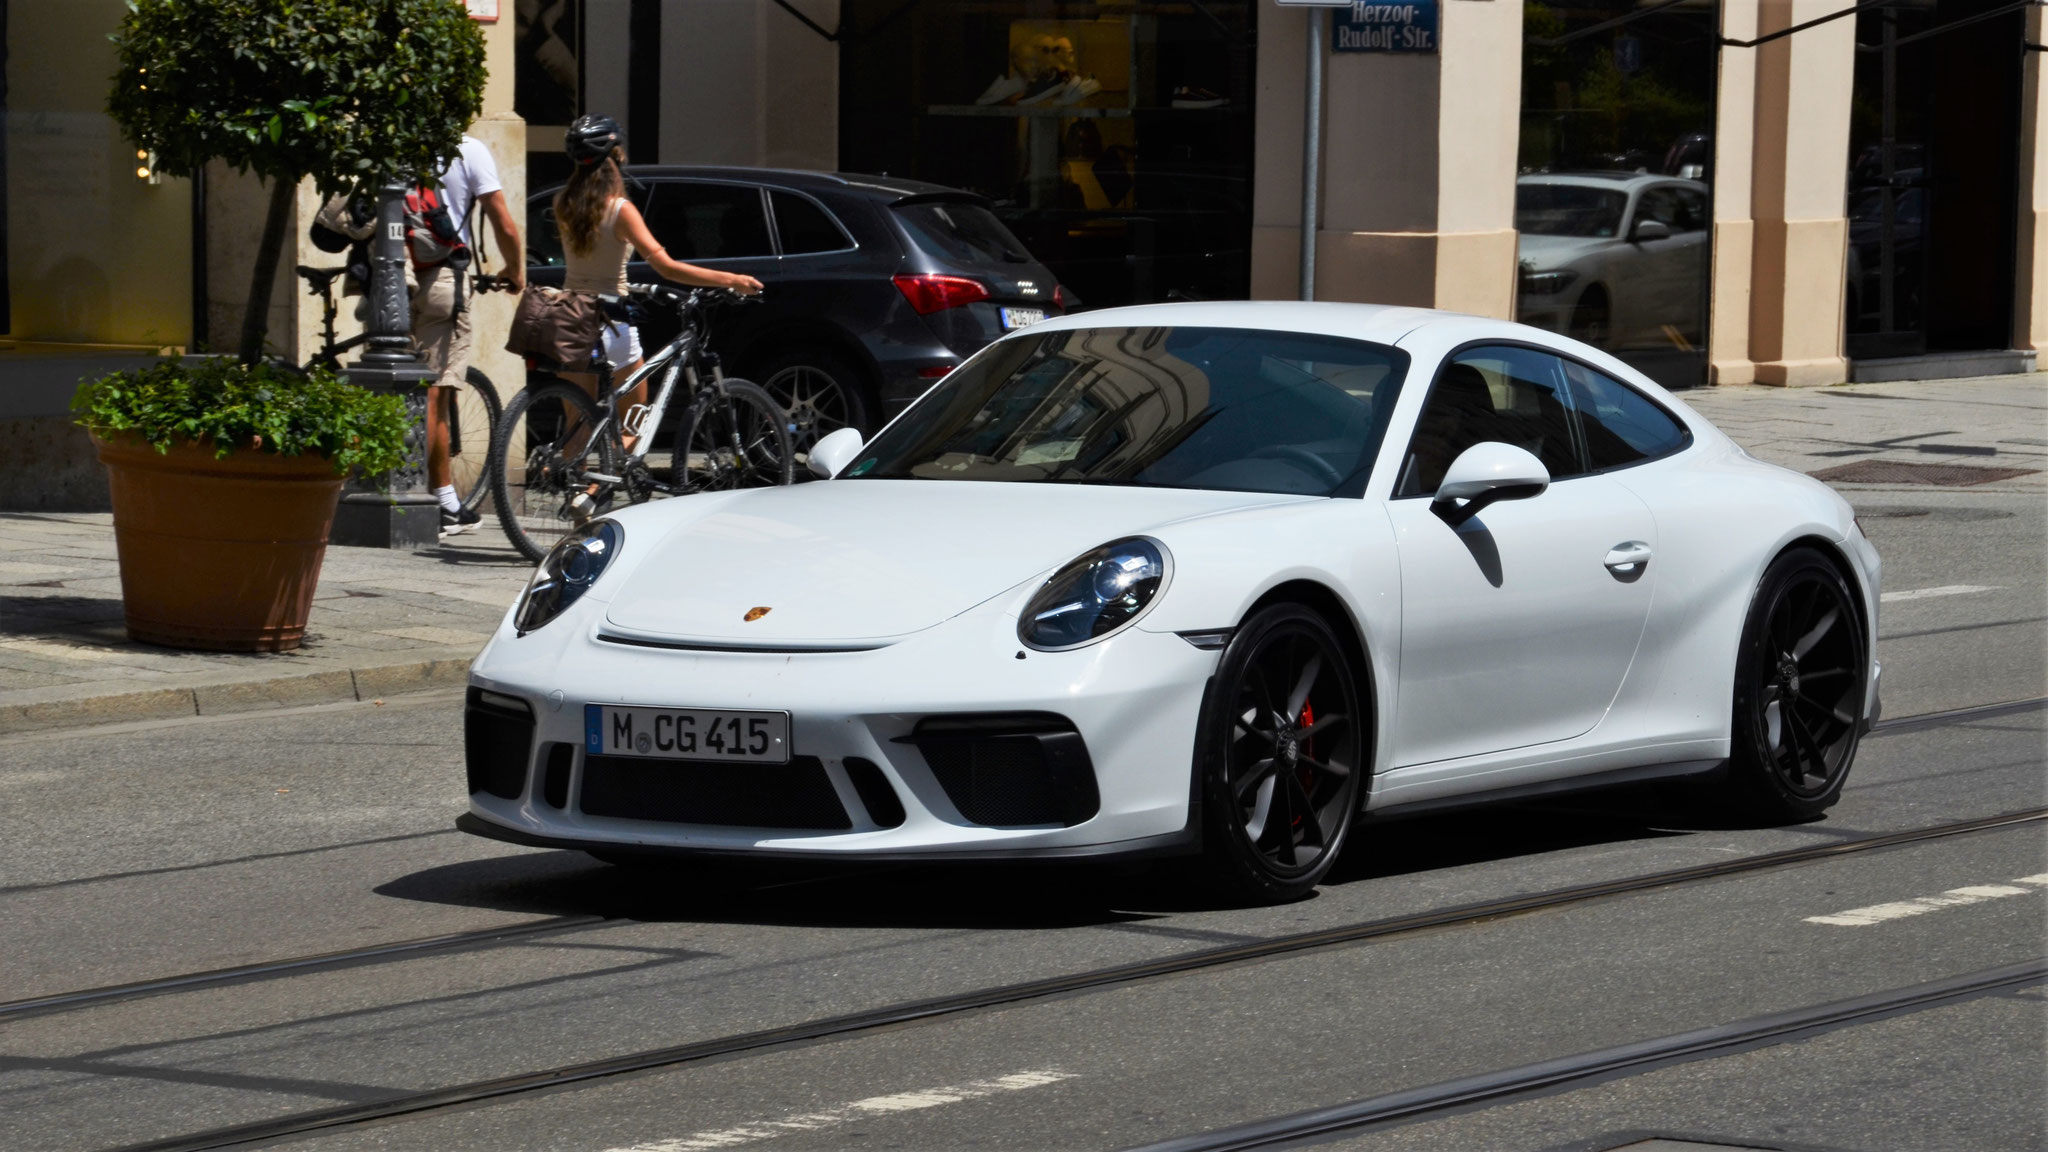 Porsche 991 GT3 Touring Package - M-CG-415